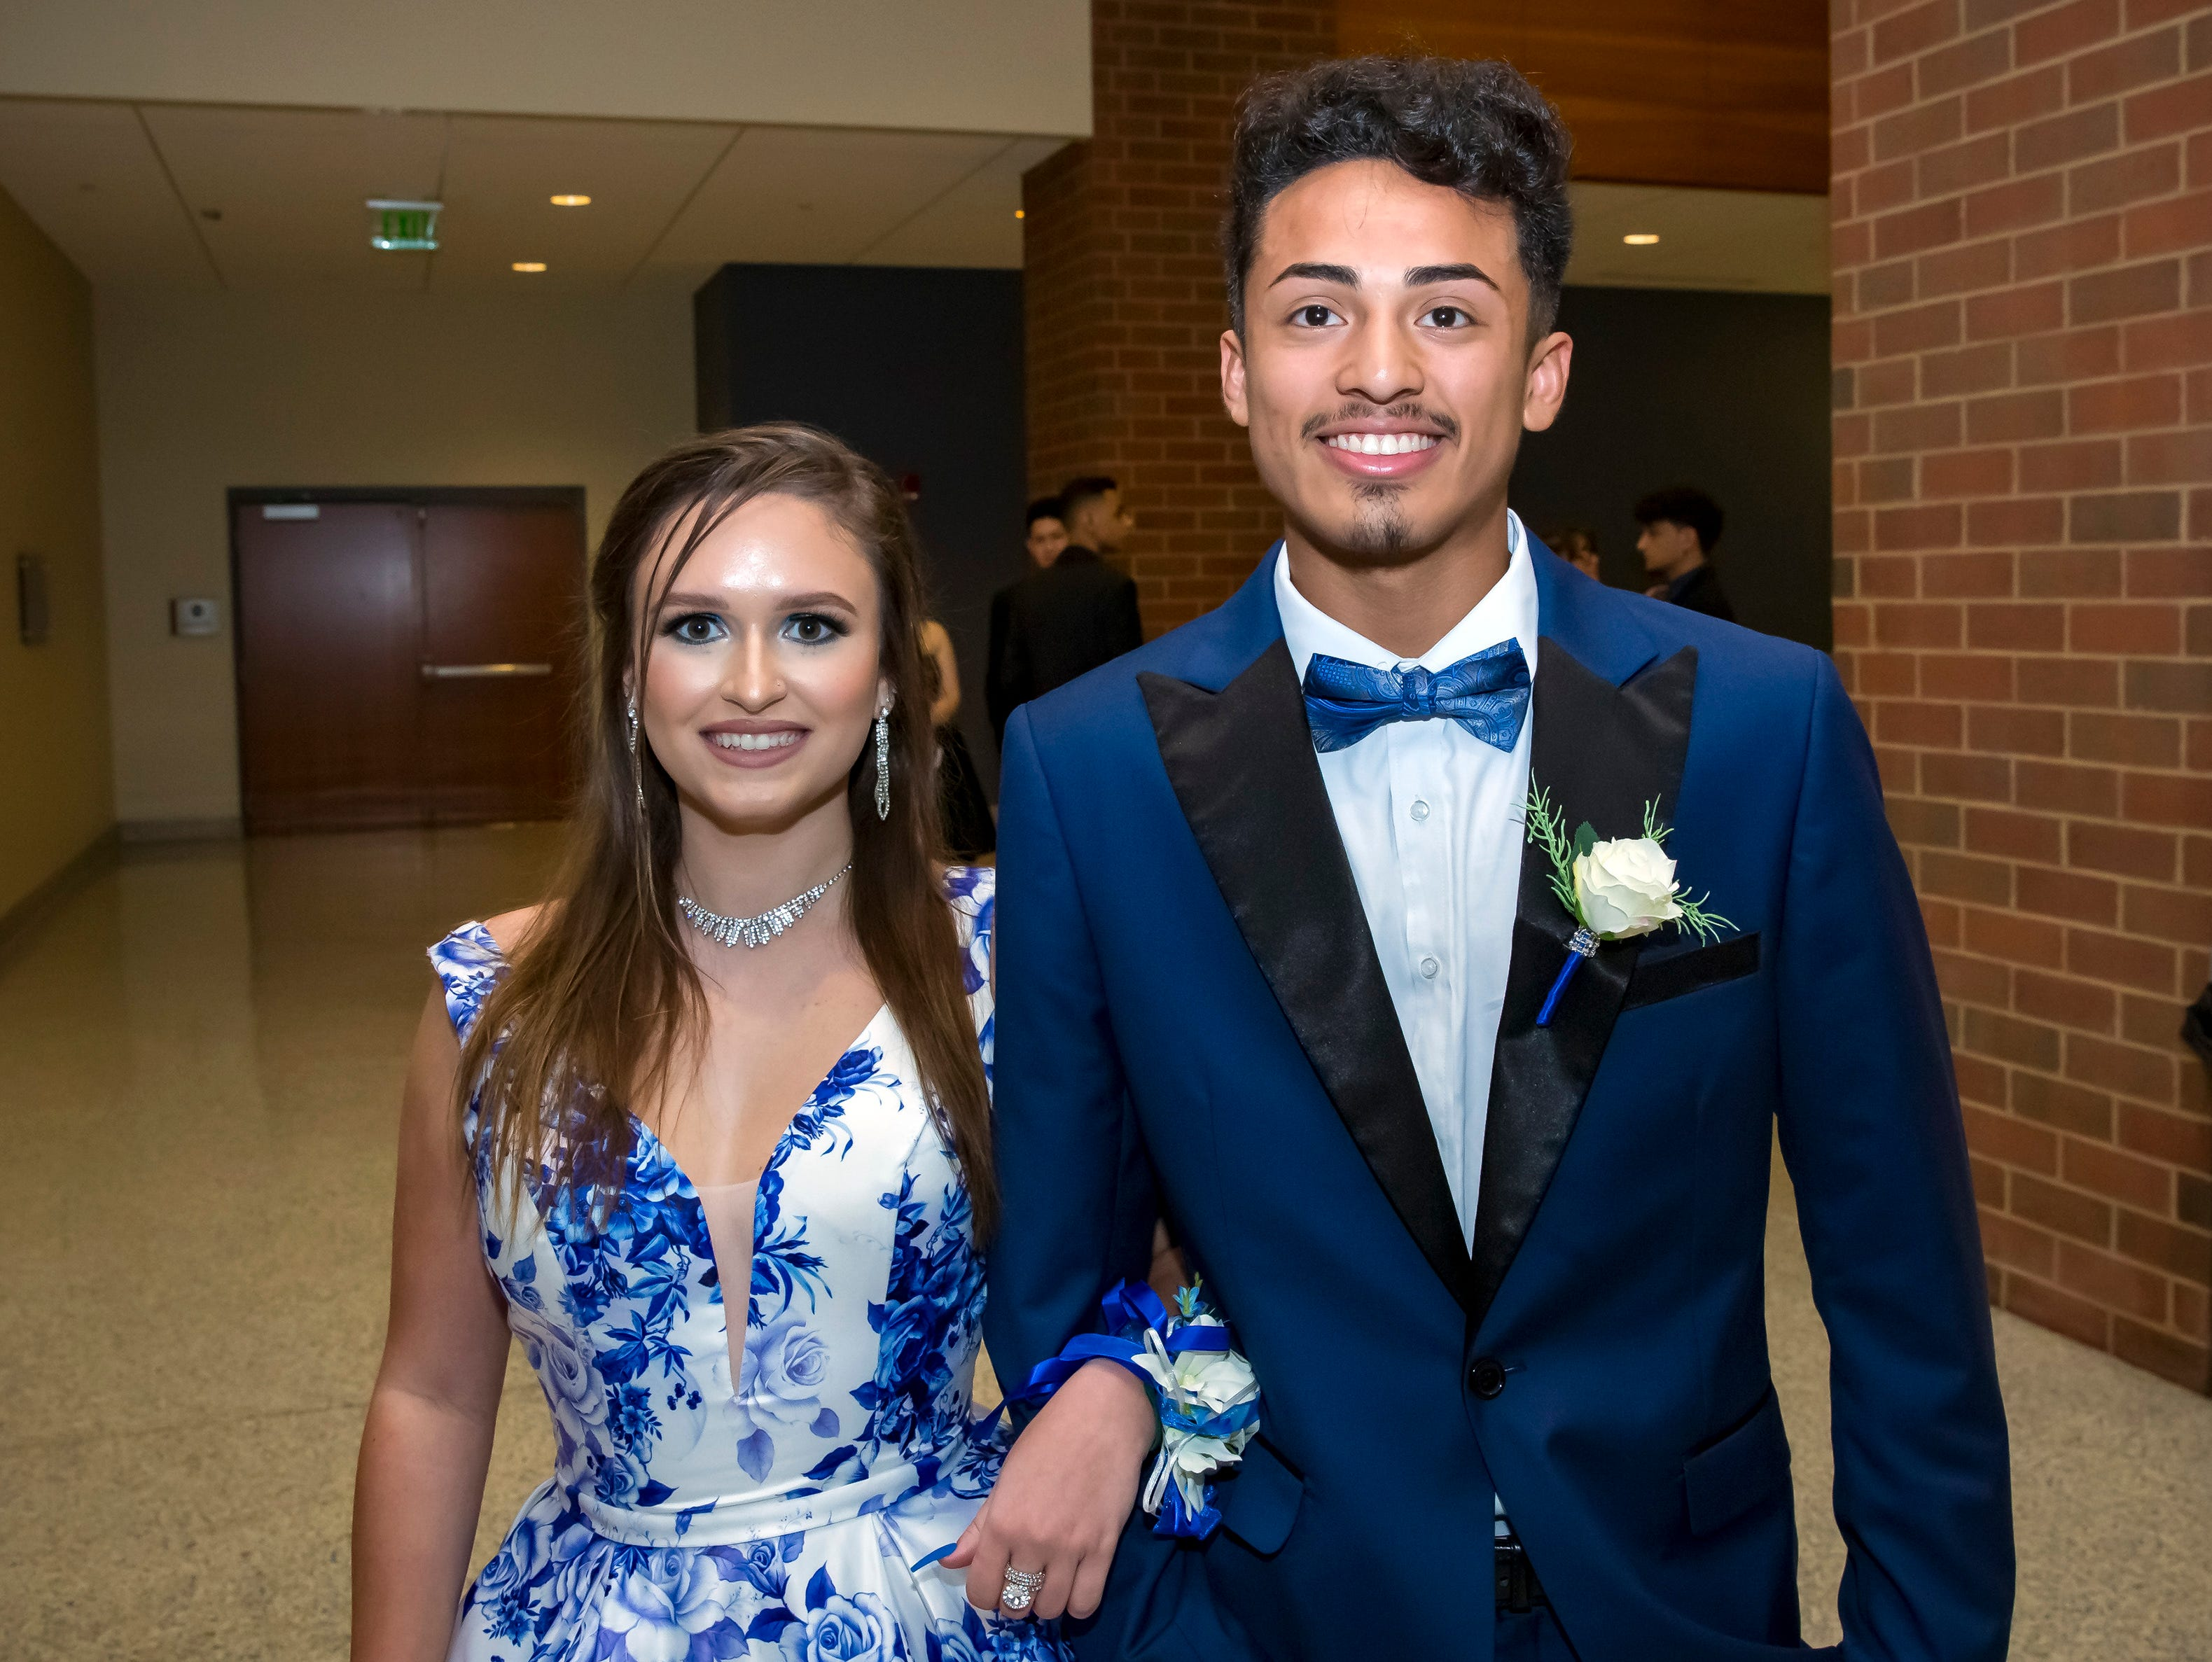 Melanie Romero and Andy Ortiz arrive at the Stewarts Creek High School prom held at MTSU, Friday, April 5, 2019.